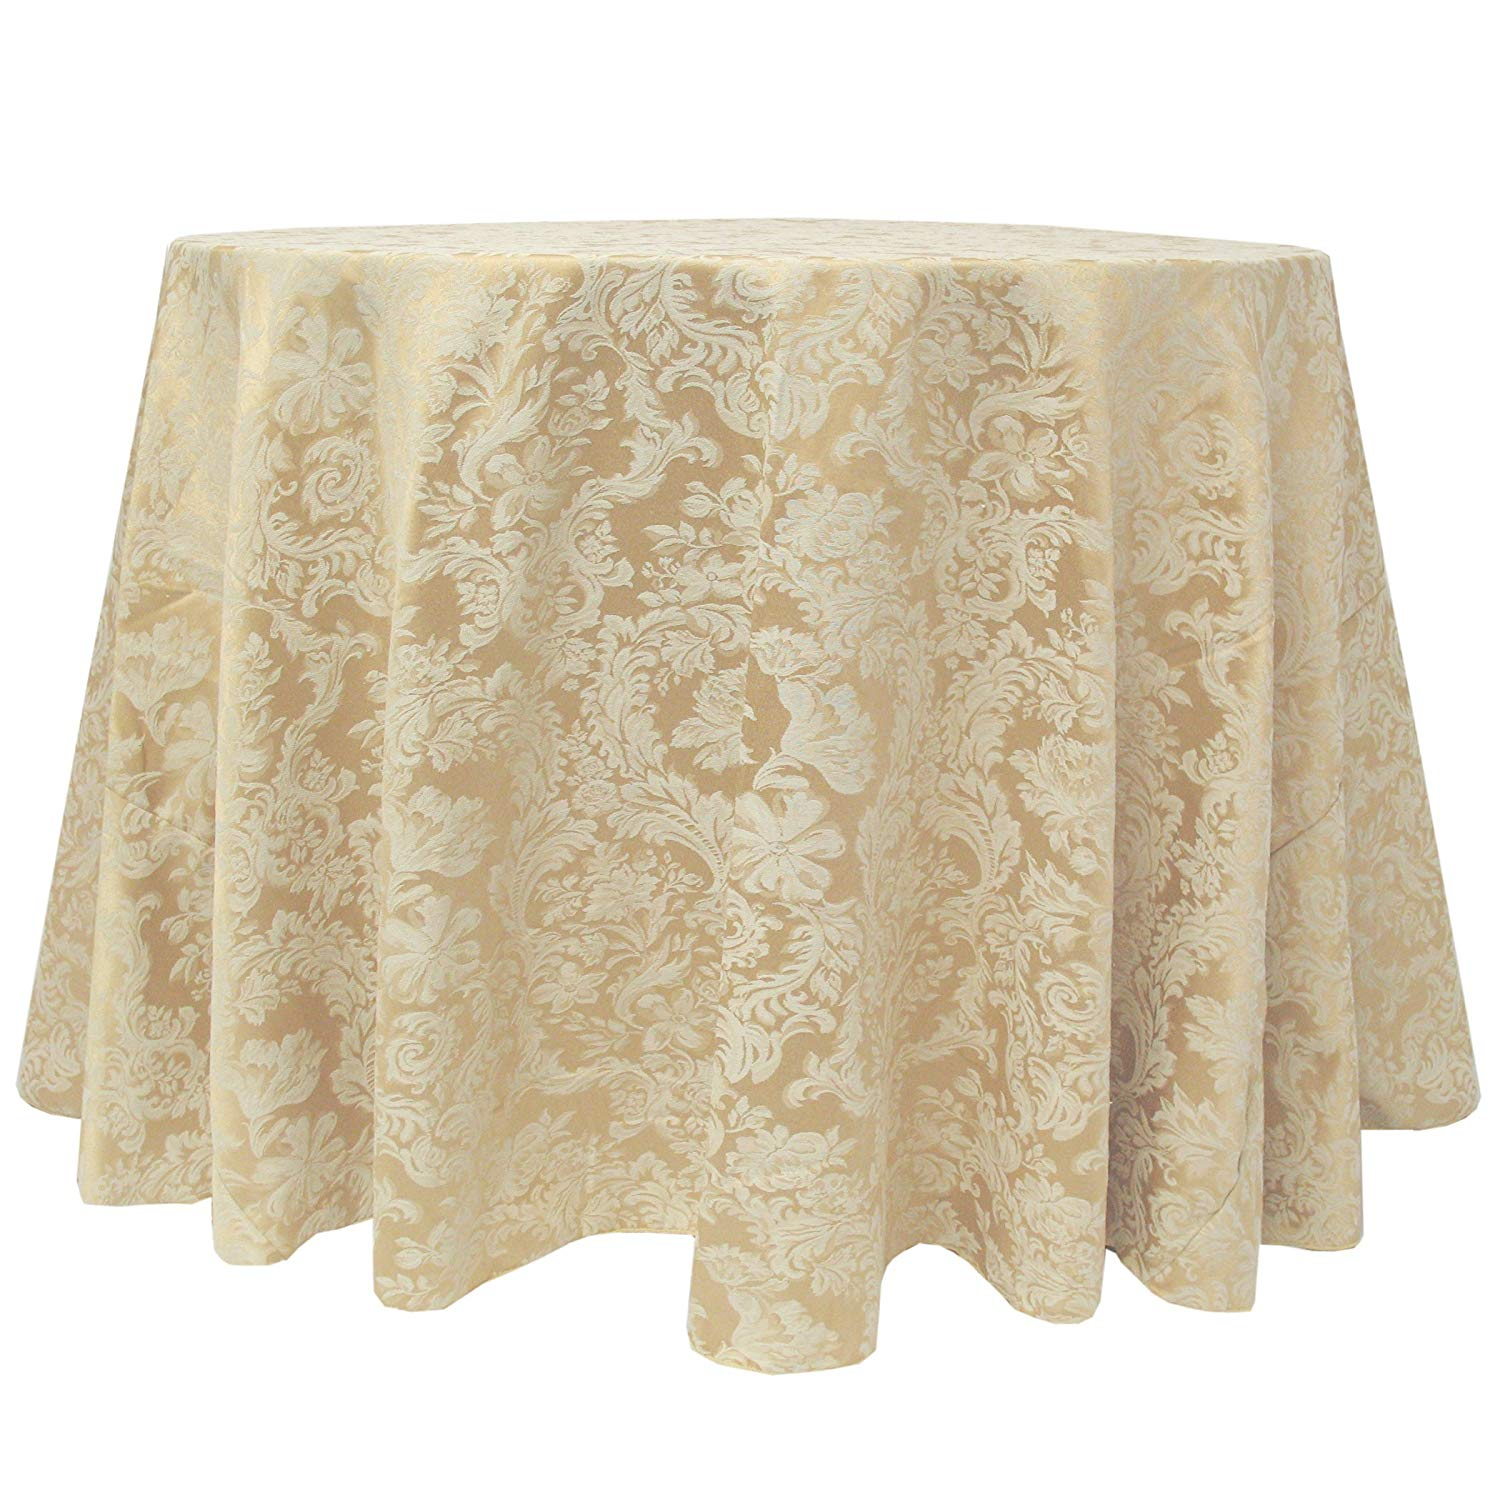 ultimate textile miranda inch round damask tablecloth accent fits tables smaller than inches diameter champagne ivory cream home kitchen table topper patterns sewing high back